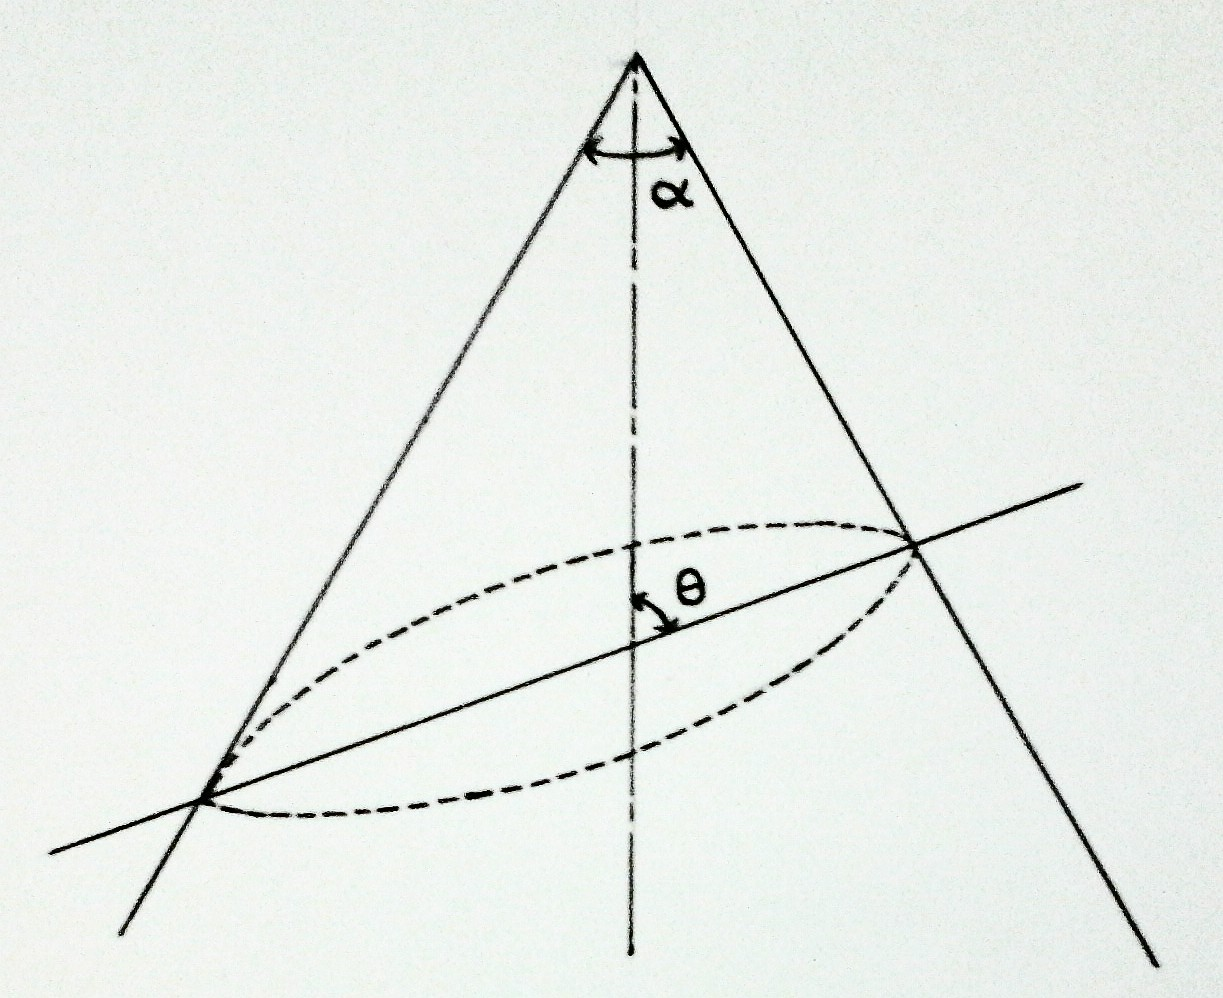 conic sections diagram wiring for bft photocells geometry evaluate the eccentricity of elliptical